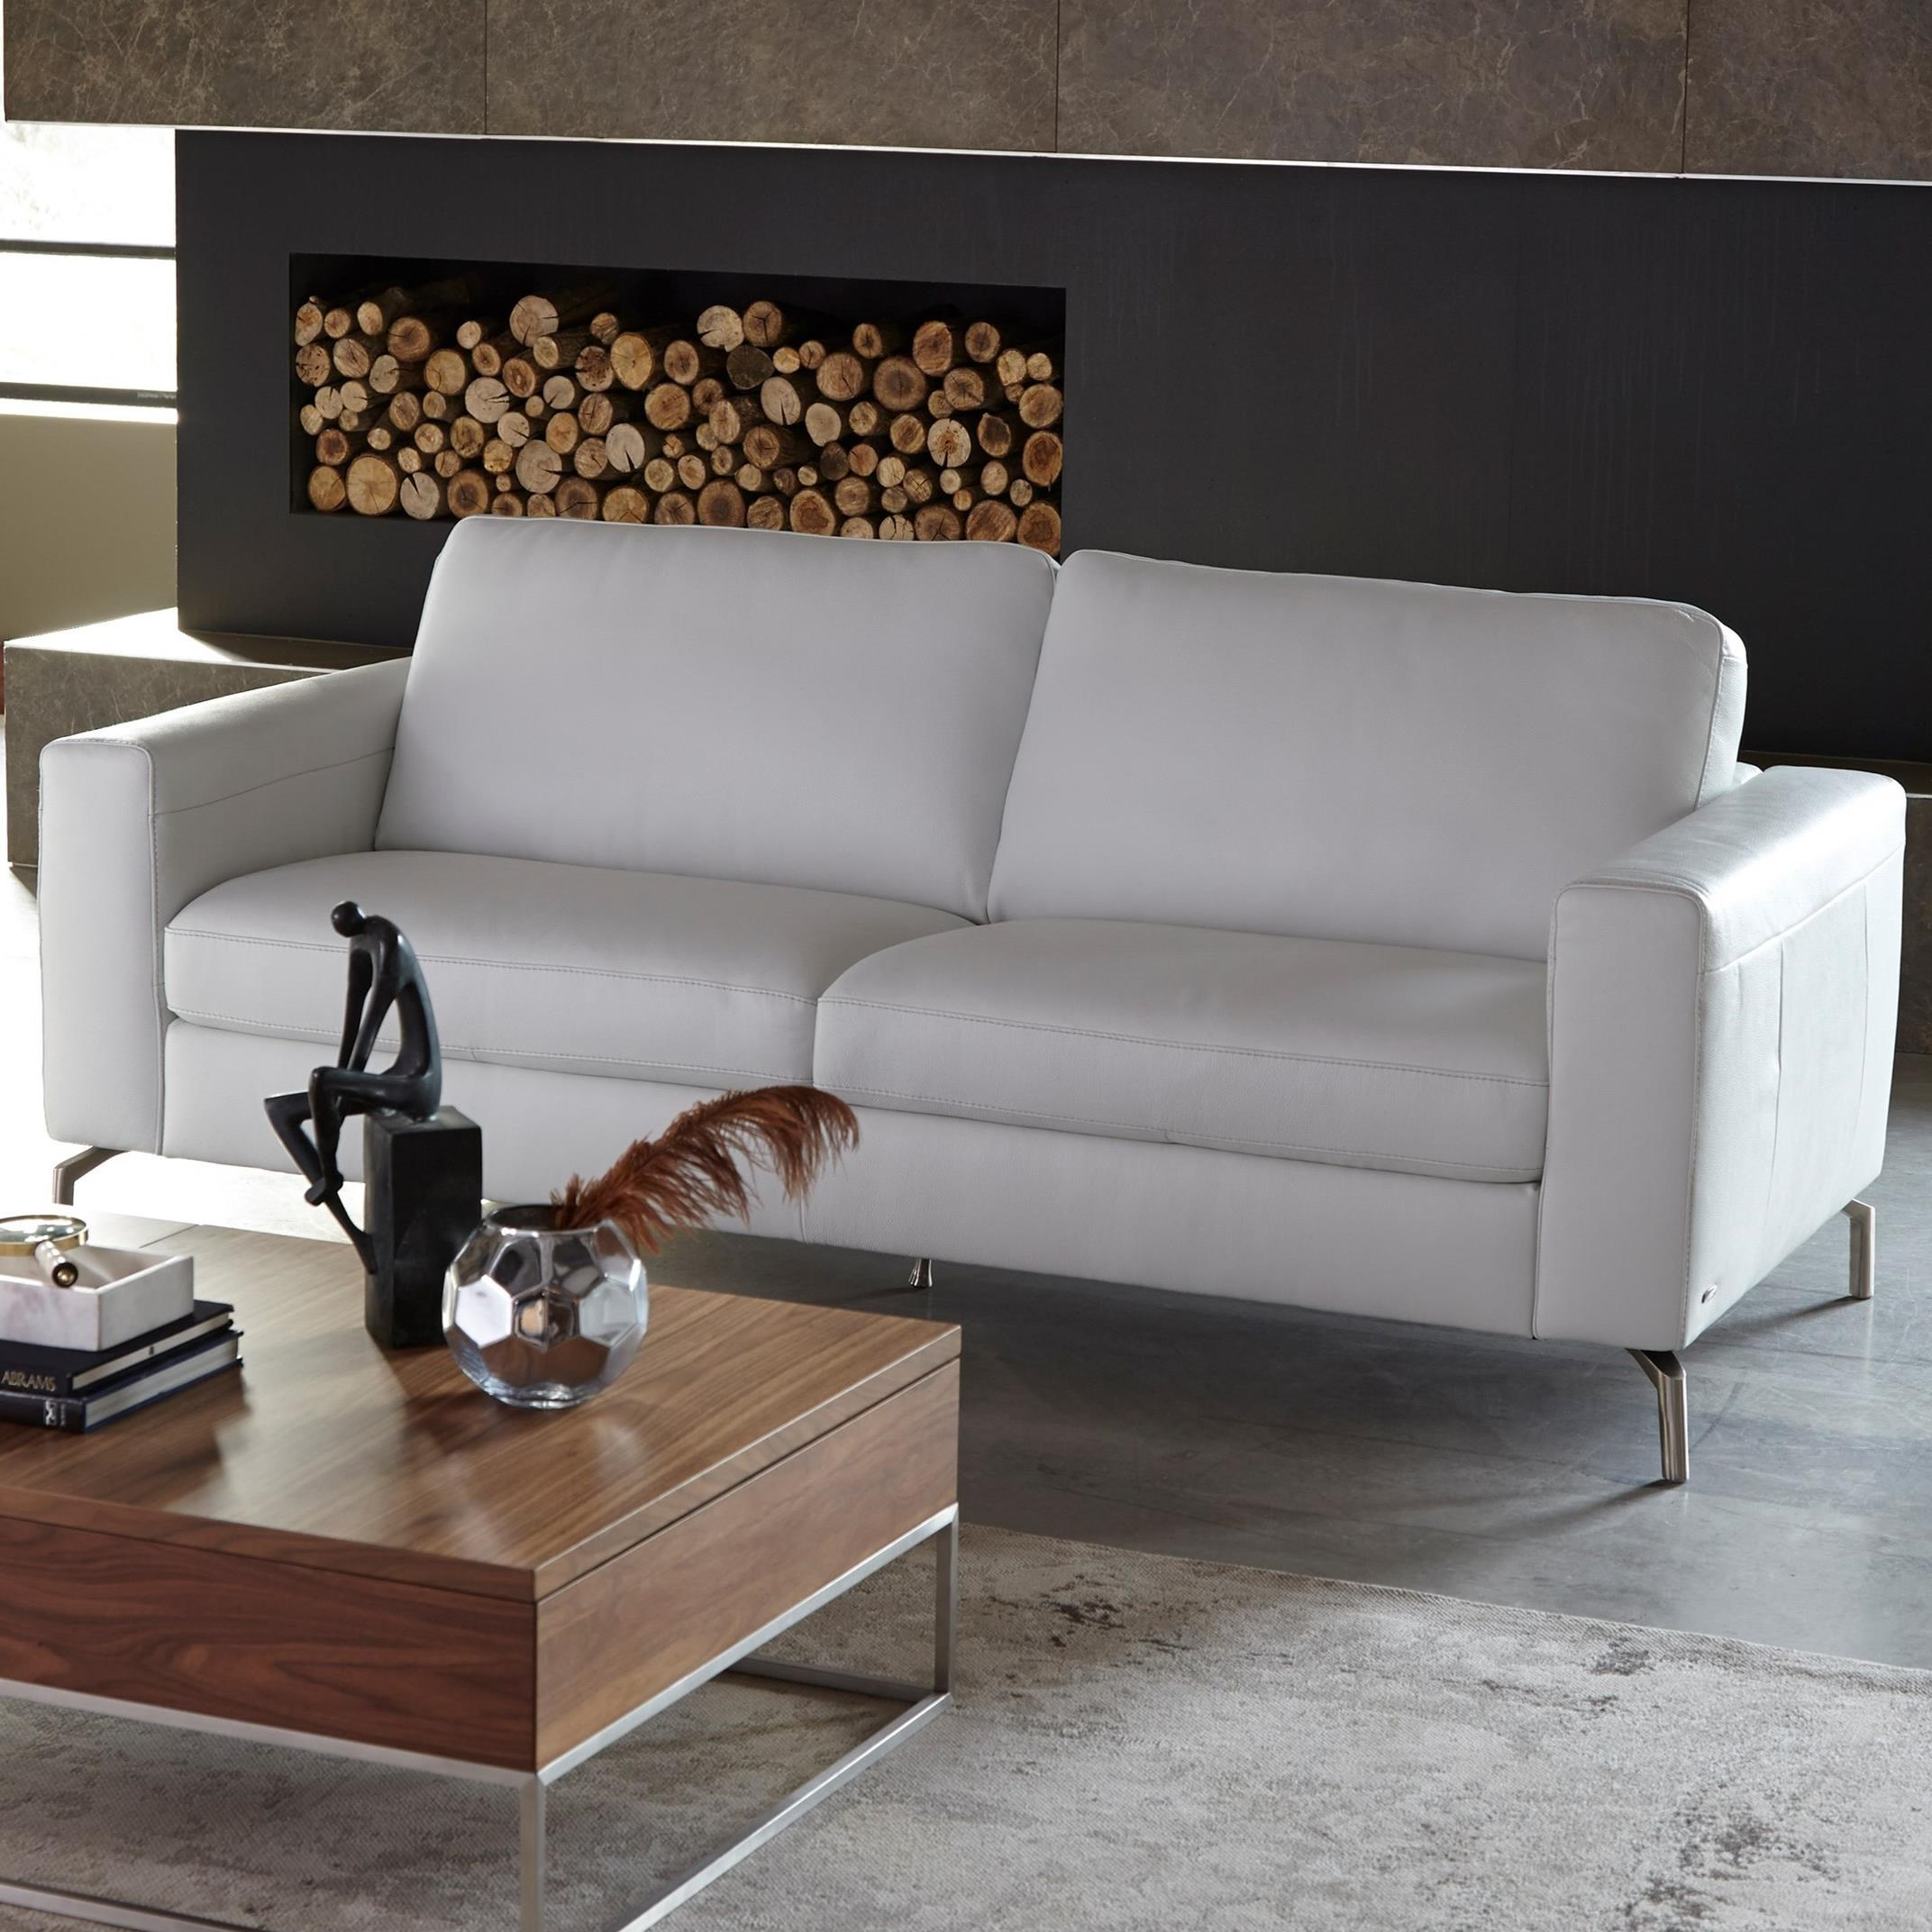 Natuzzi Editions B845 Sofa   Item Number: B845 239